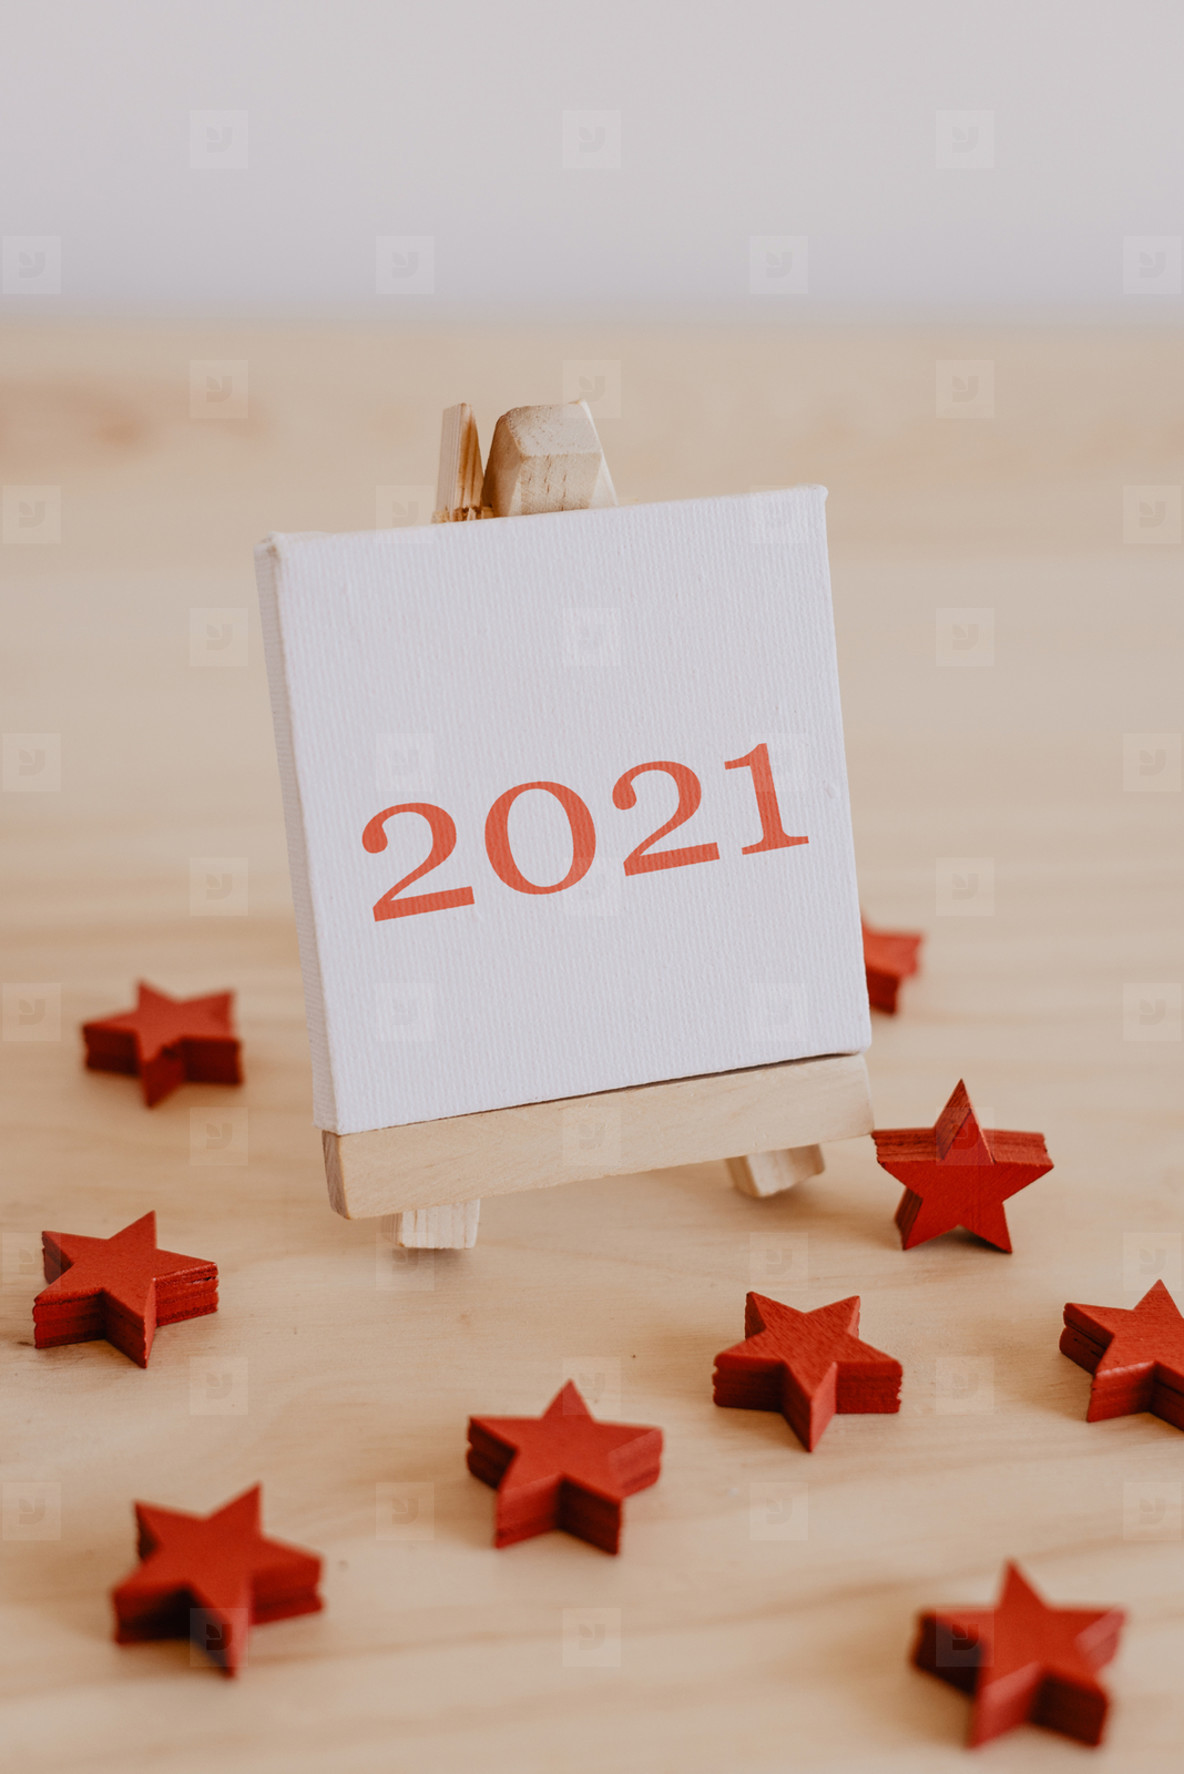 2021 written on the canvas of a painting easel with decorative red stars